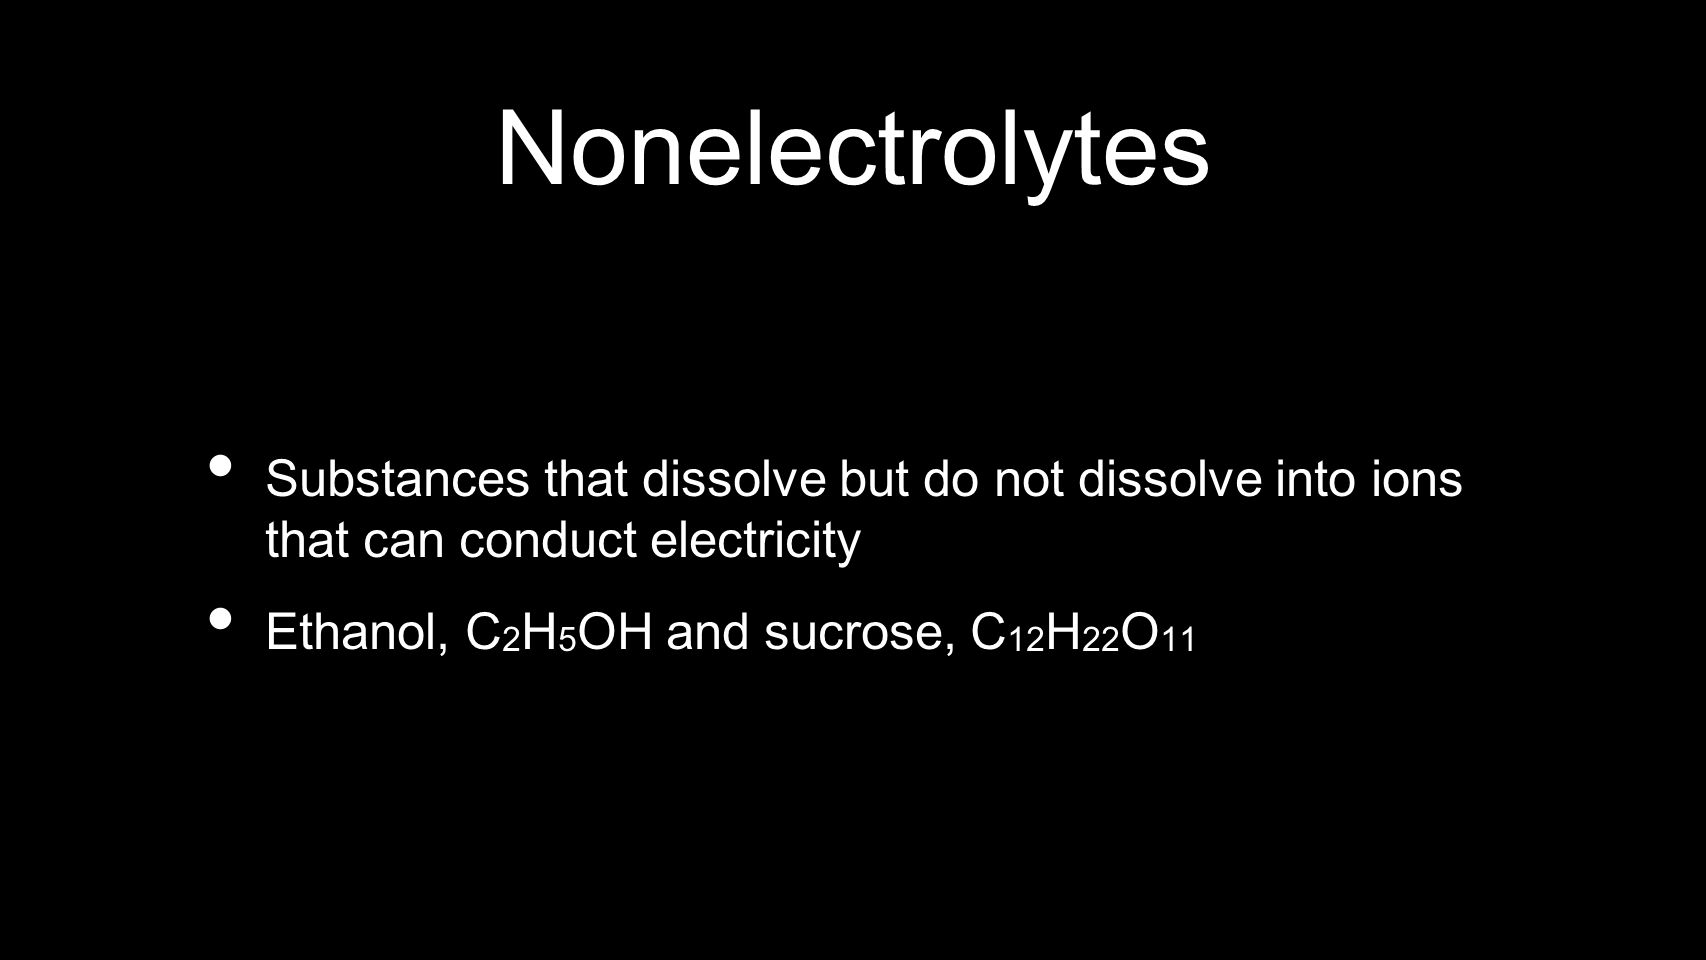 Nonelectrolytes Substances that dissolve but do not dissolve into ions that can conduct electricity.